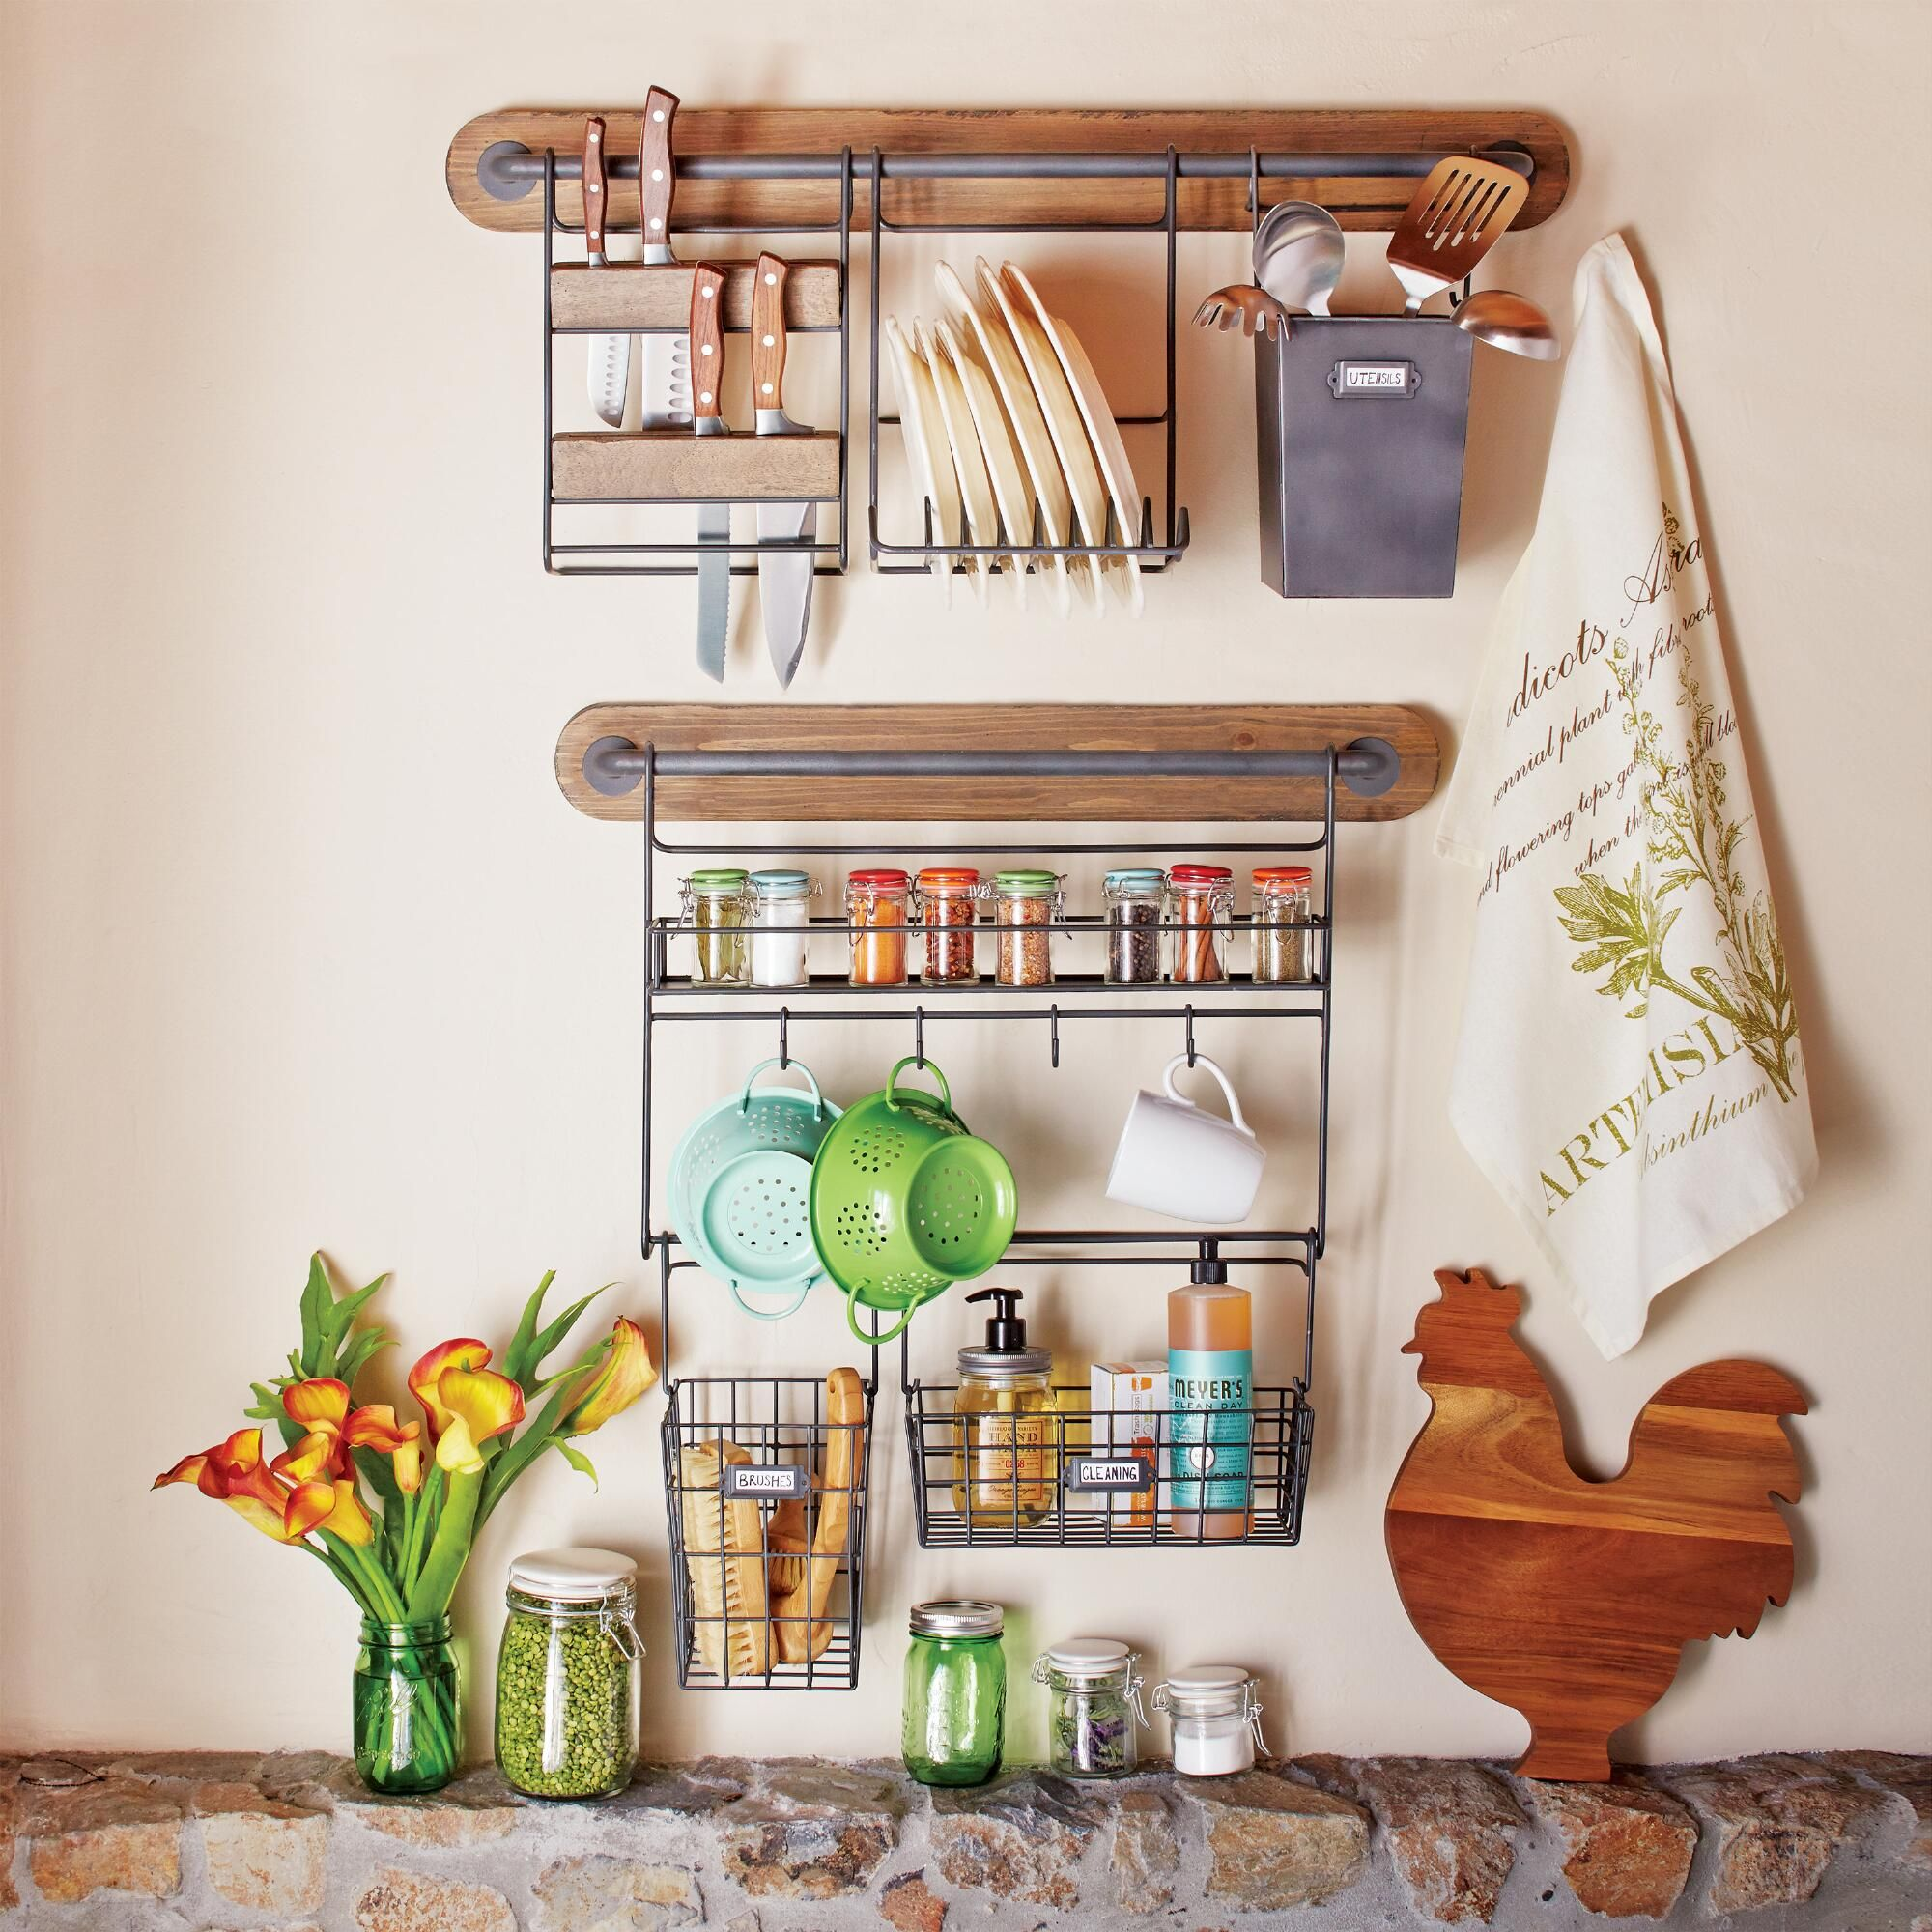 Hang teacups pots pans and other essentials right on the wall with